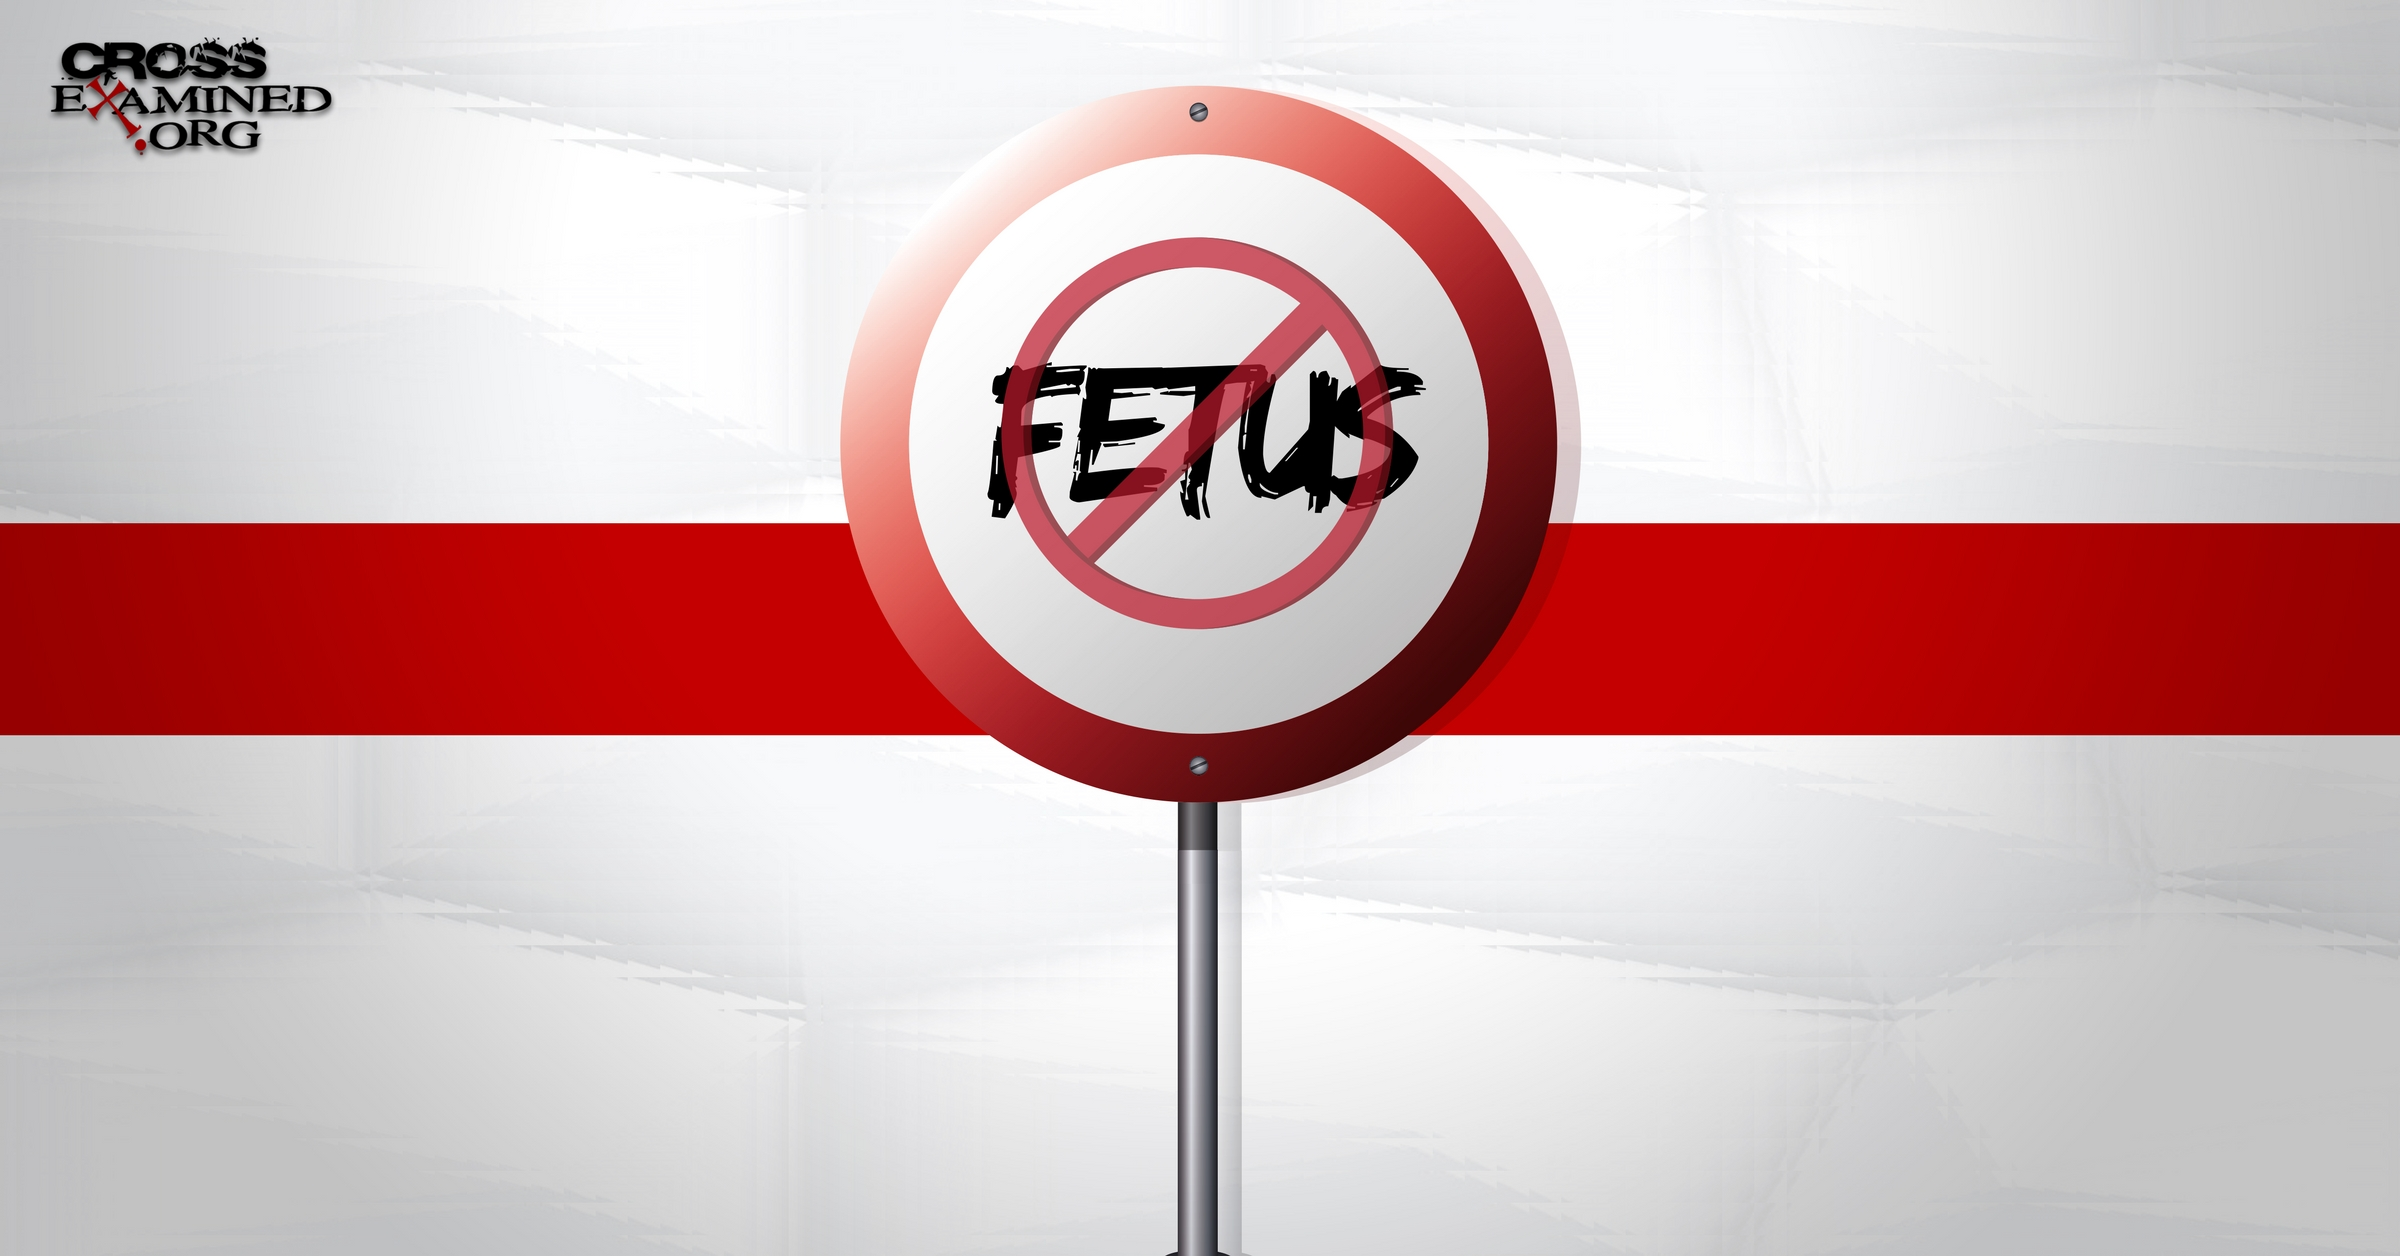 Fetus Abortion Morality